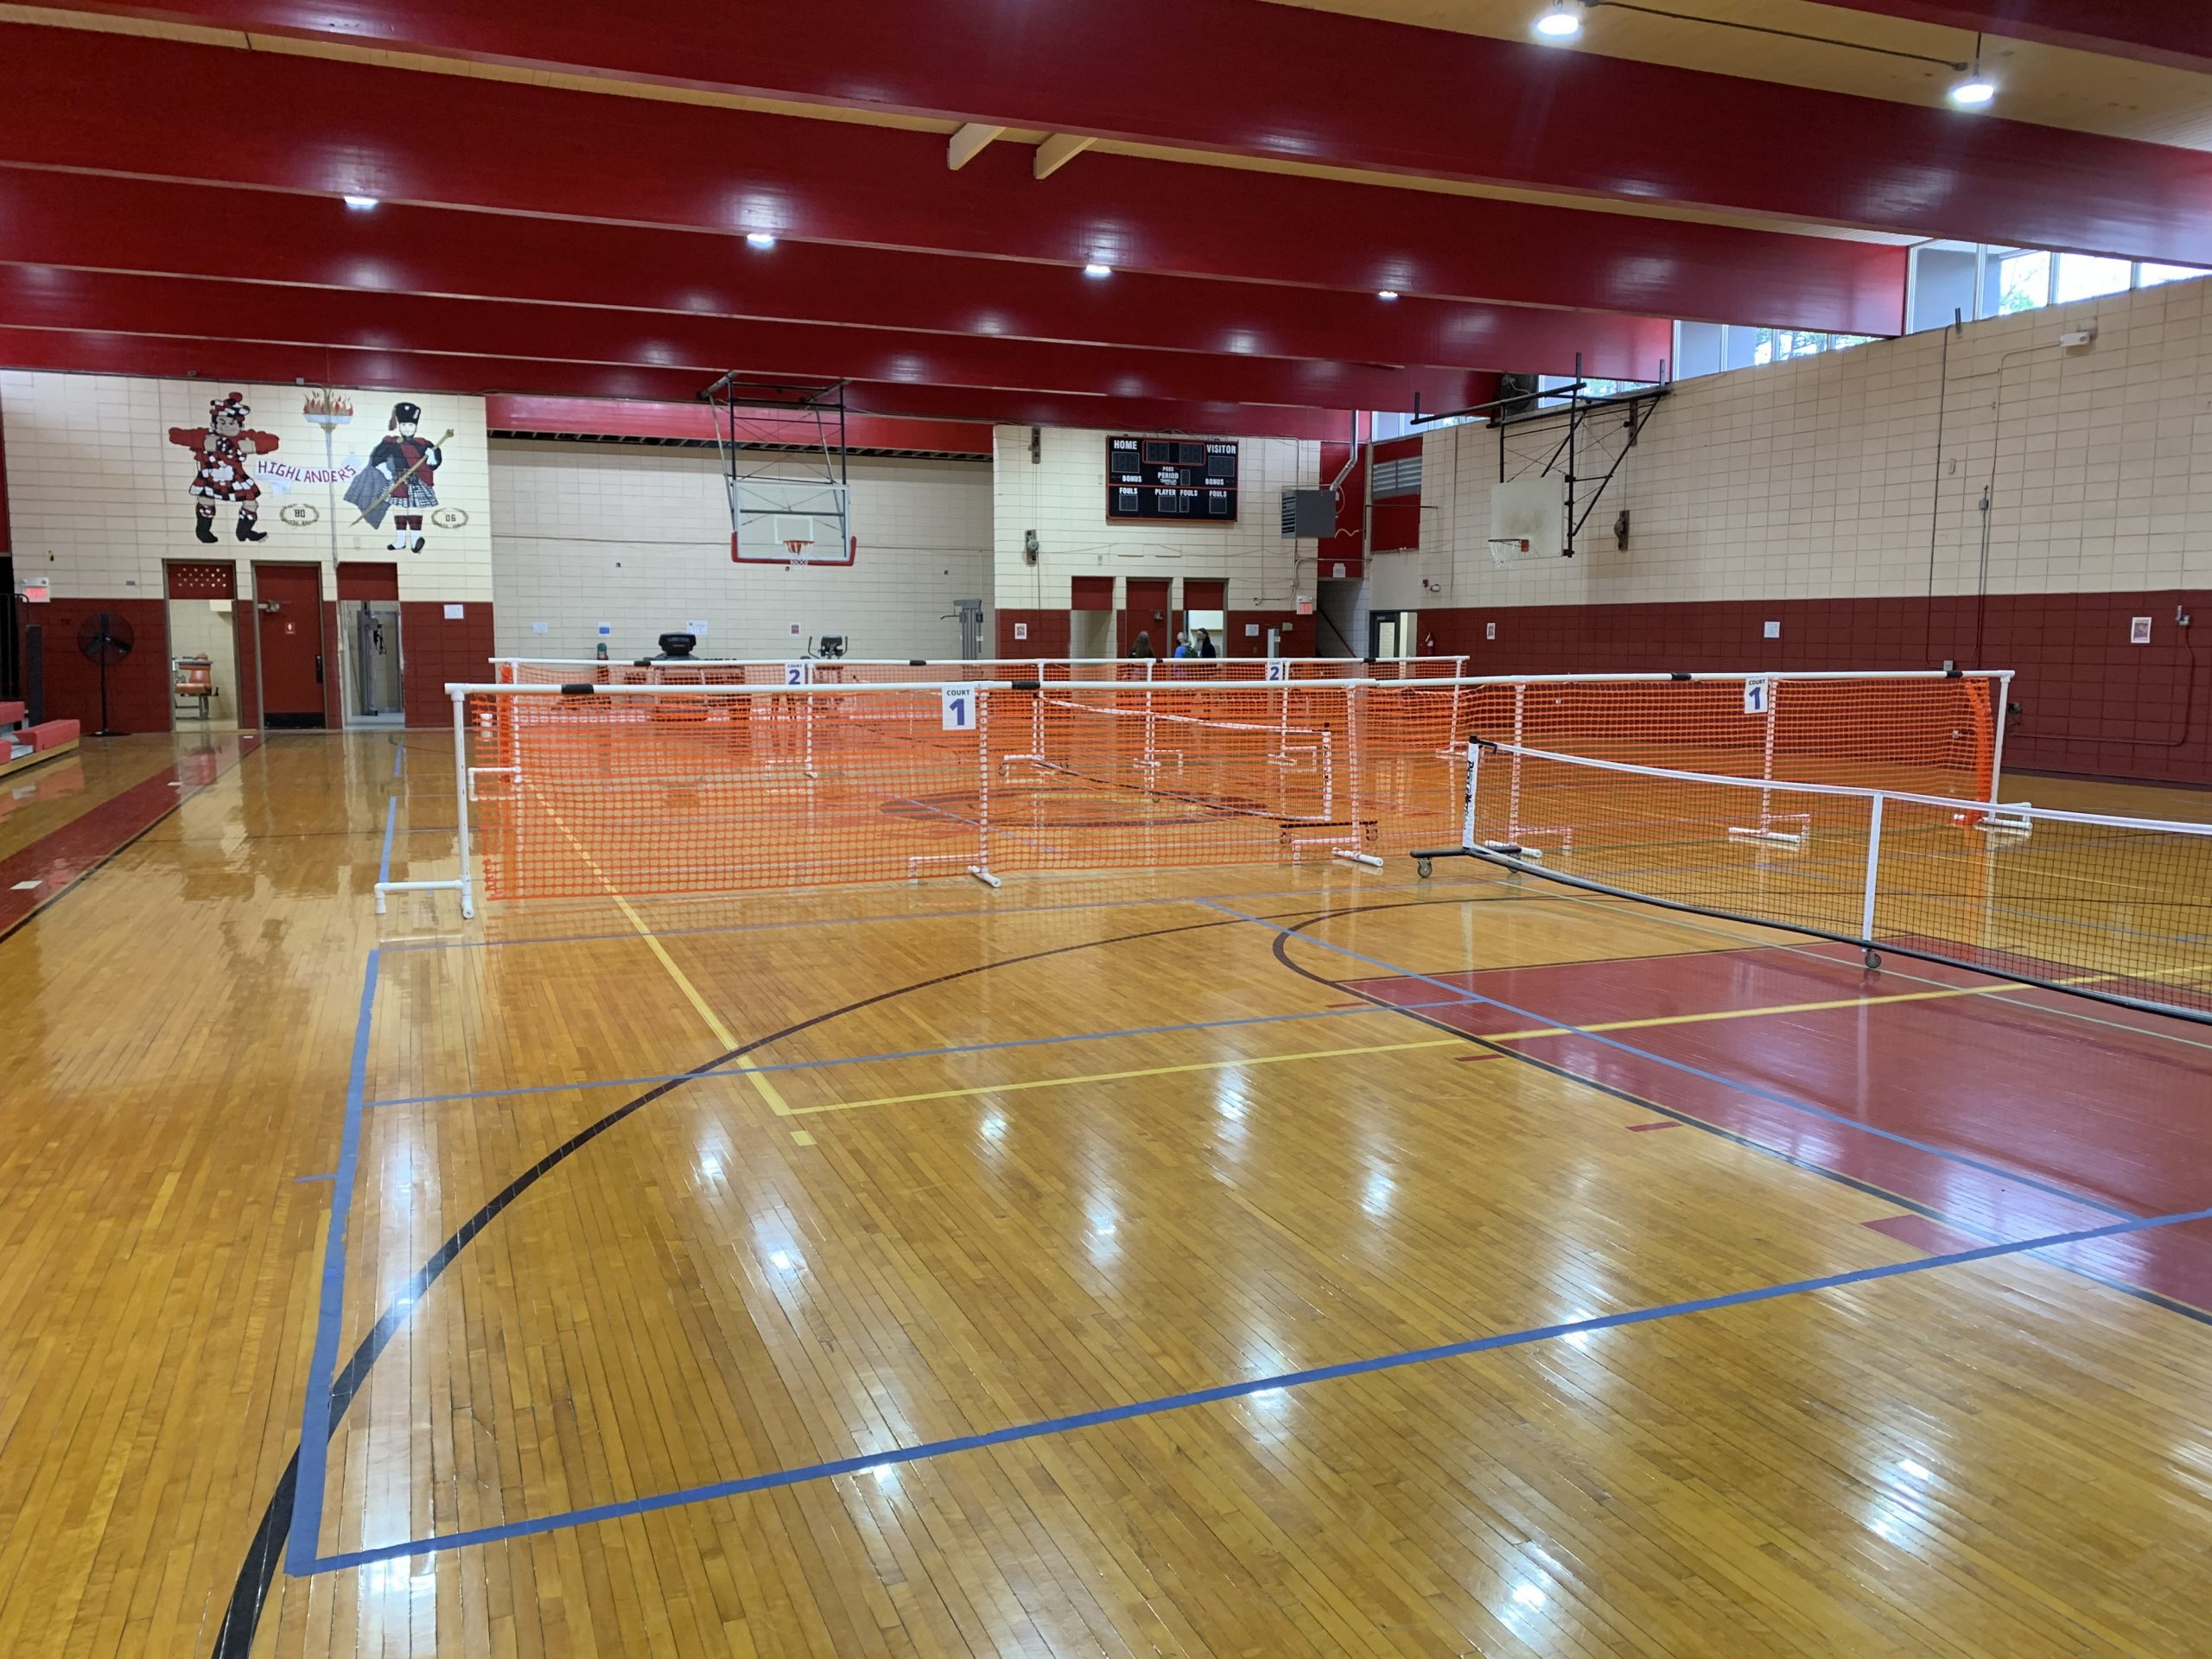 Gym showing new lights